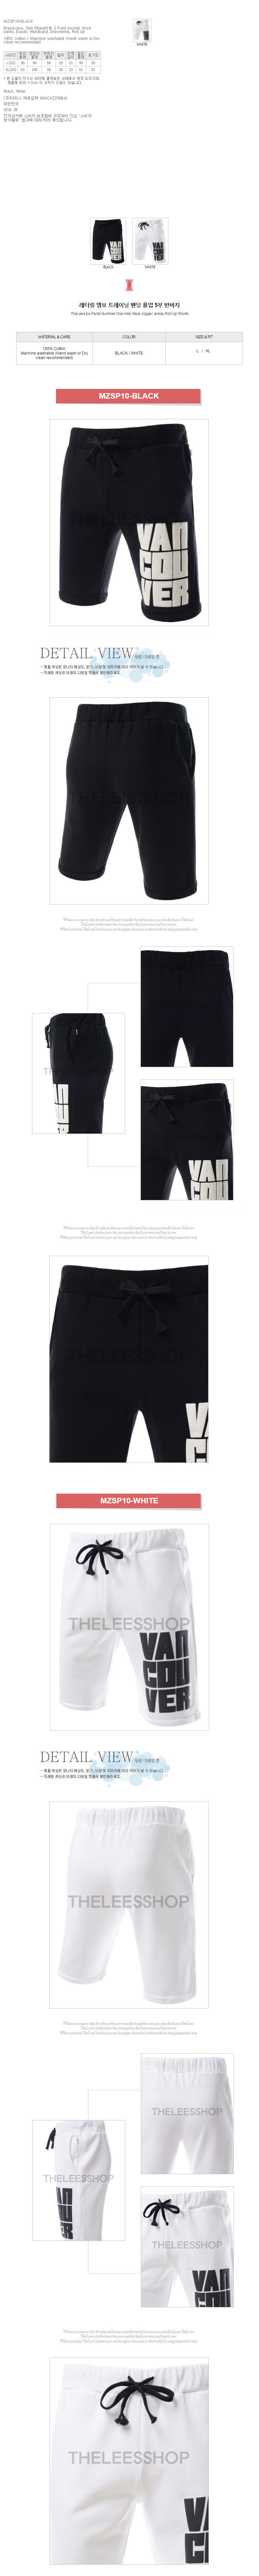 [ KOOLLOOK ] [KoolLook] Embroidered Training Roll-up Shorts MZSP10